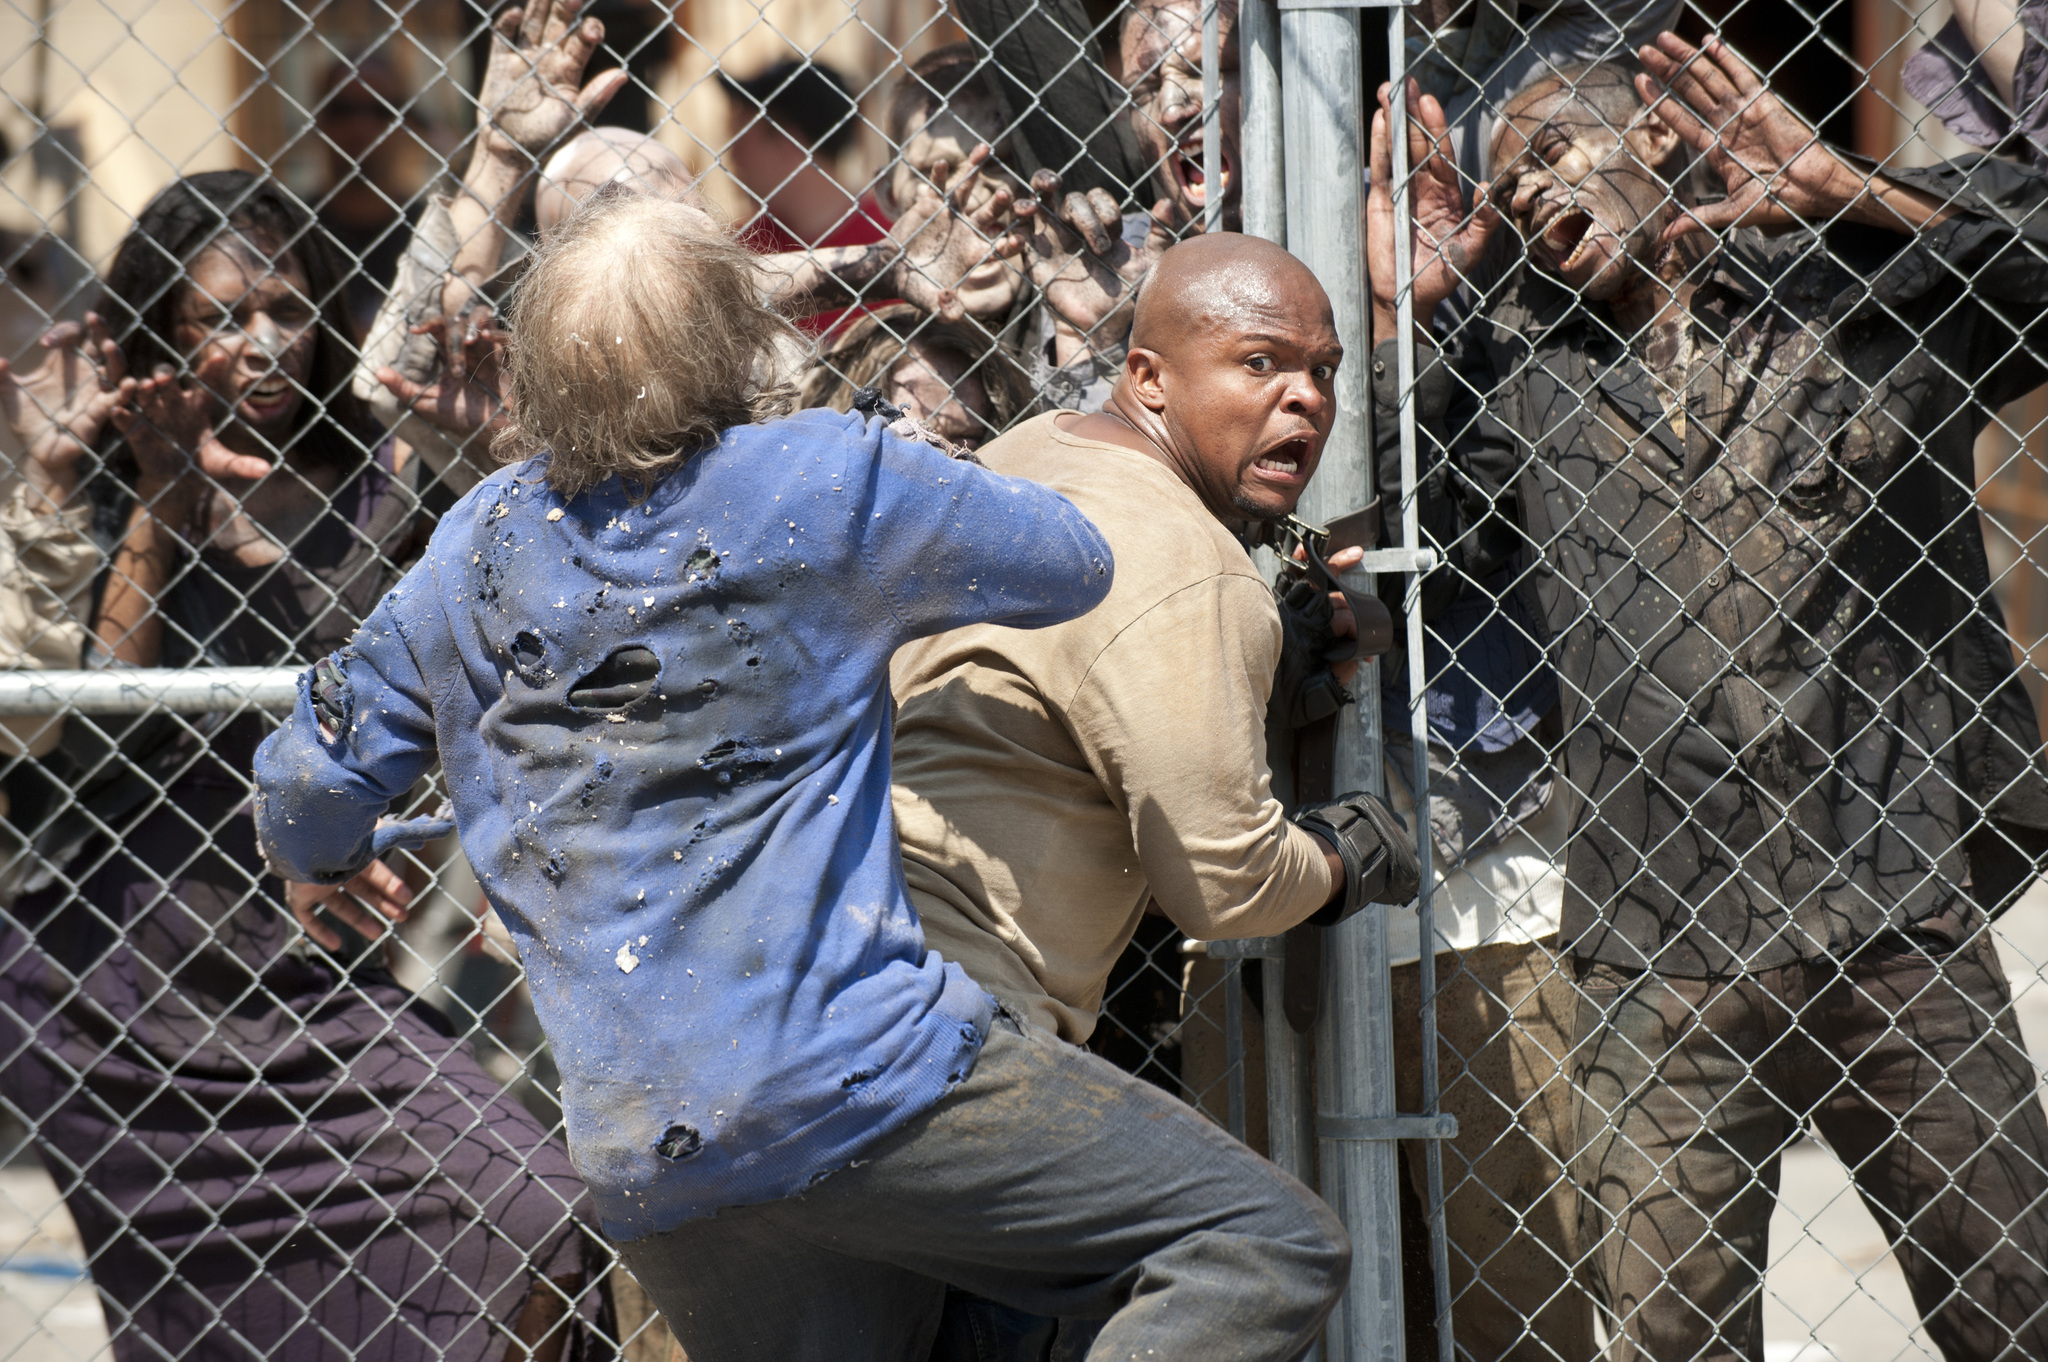 Irone Singleton and Andrew S. McMillan in The Walking Dead (2010)